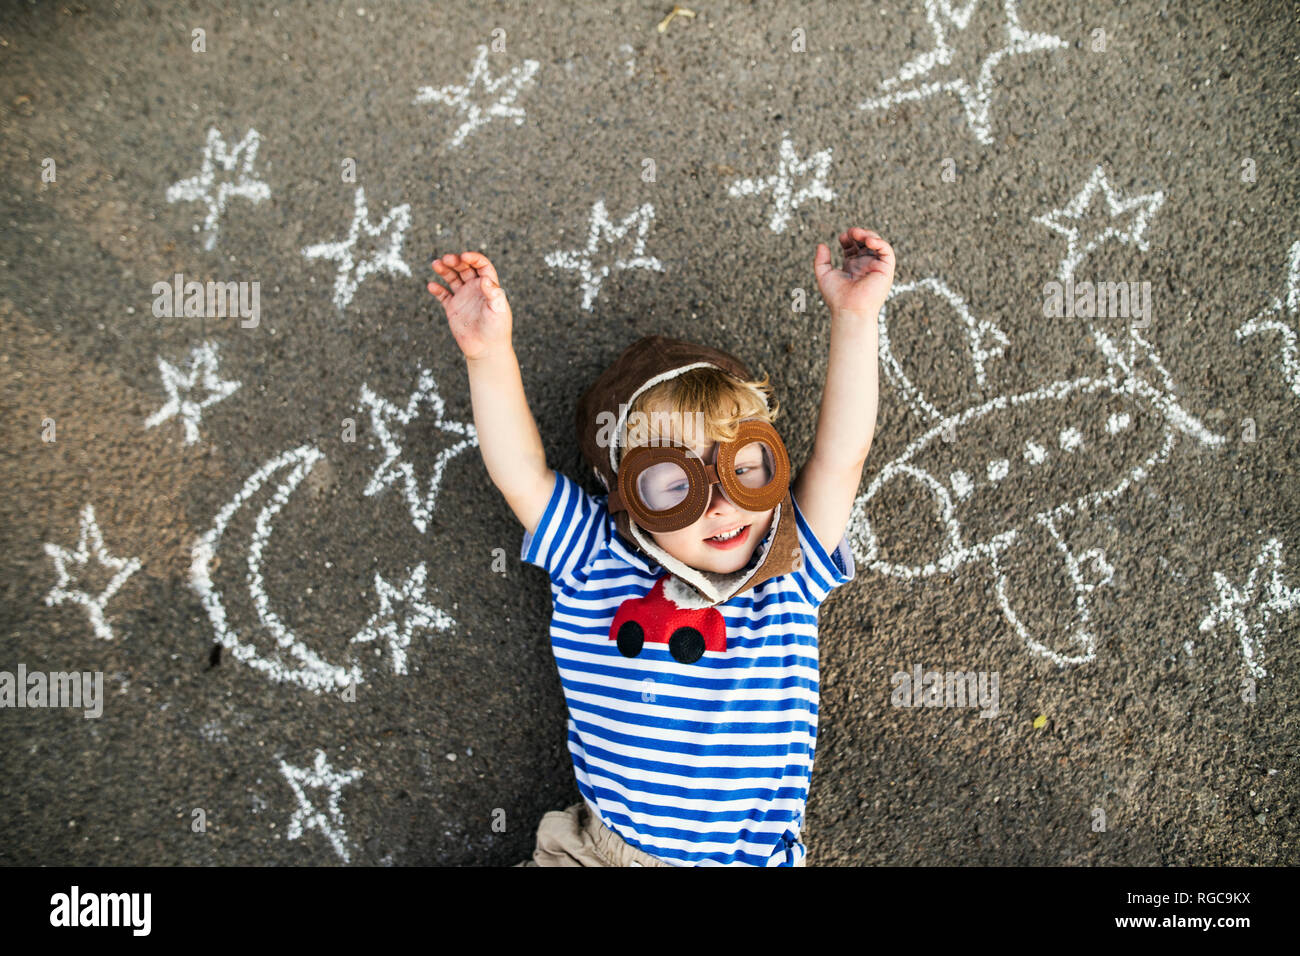 Portrait of smiling toddler wearing pilot hat and goggles lying on asphalt painted with airplane, moon and stars - Stock Image